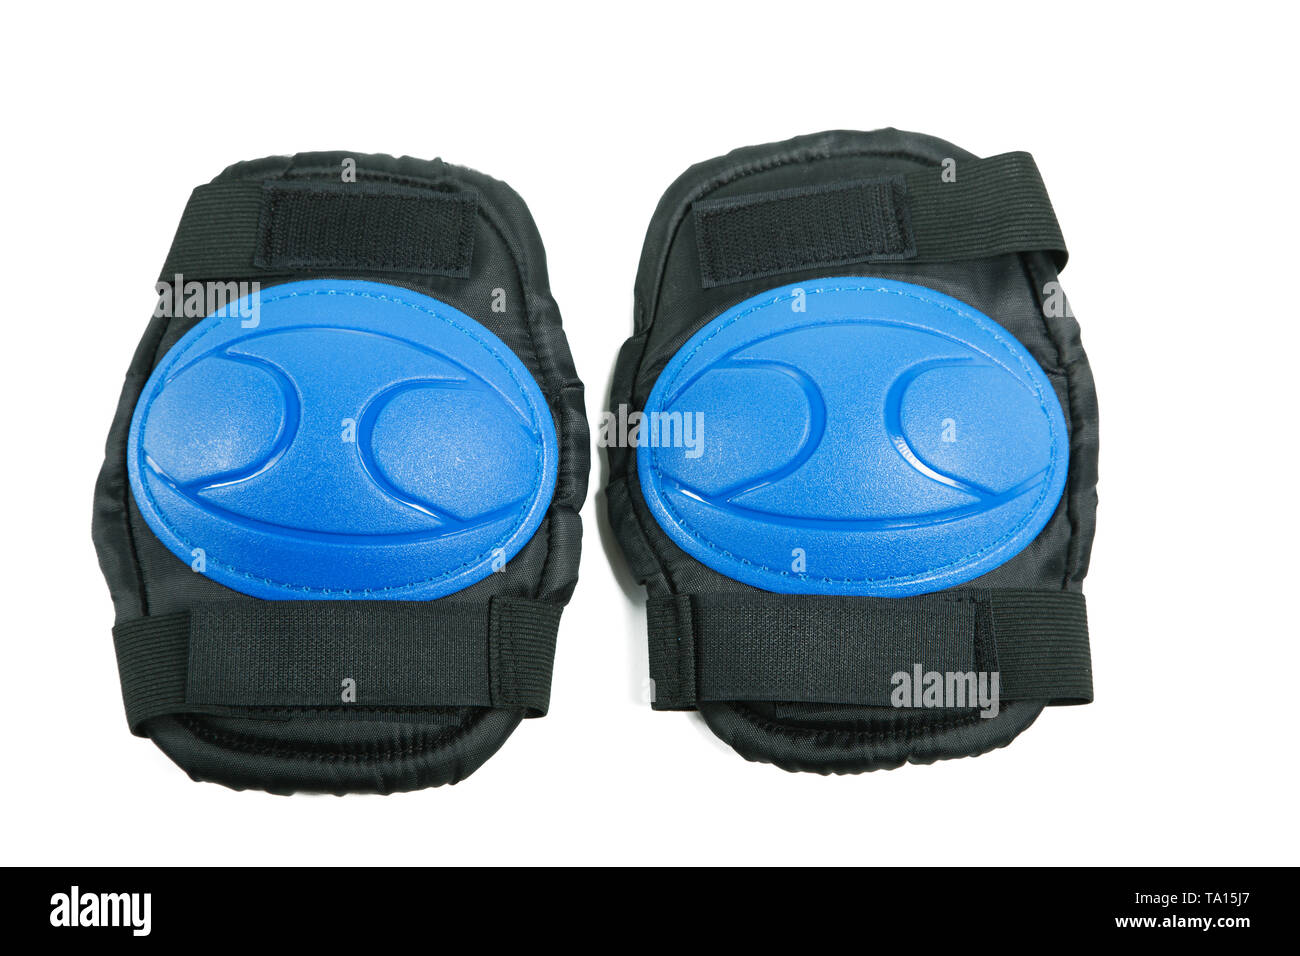 Knee pads and elbow pads isolated on white background - Stock Image